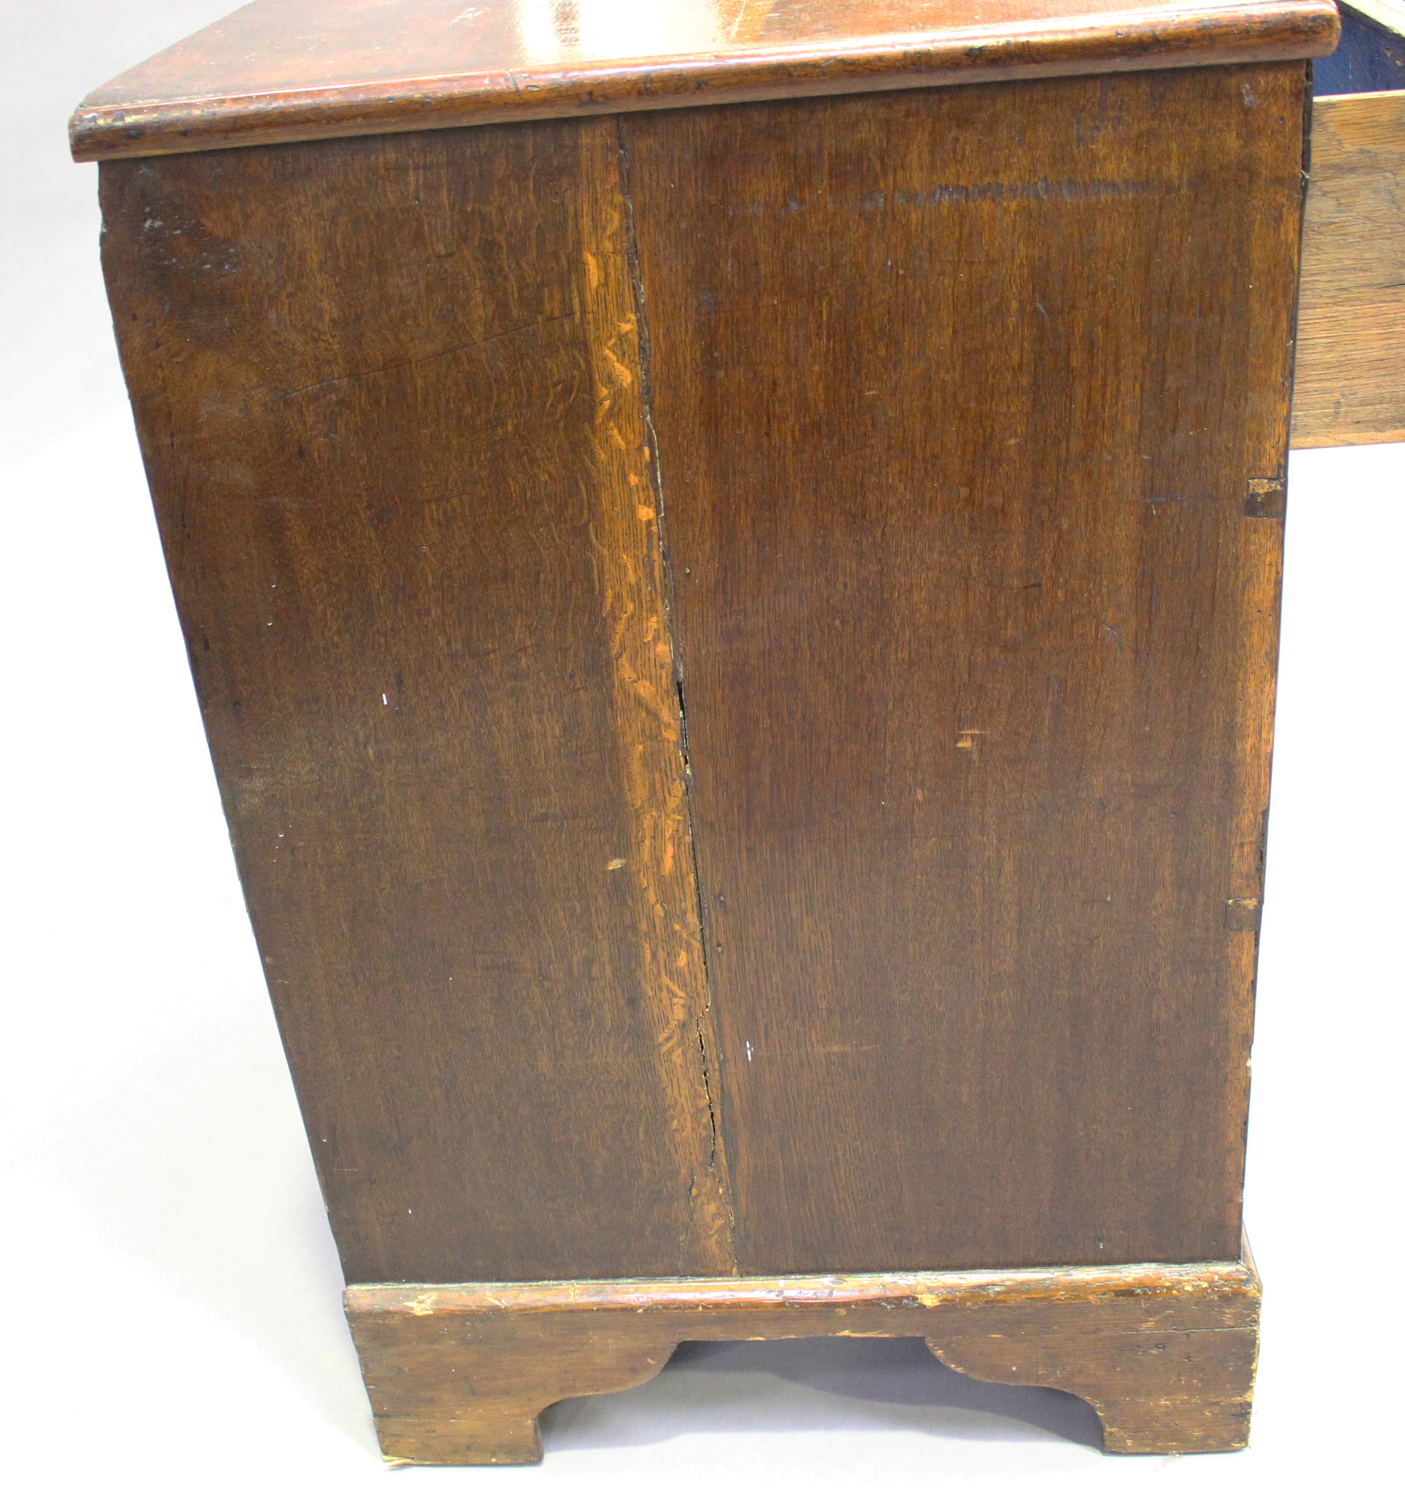 An 18th century oak and walnut chest of three drawers with crossbanded borders, on bracket feet, - Image 5 of 7